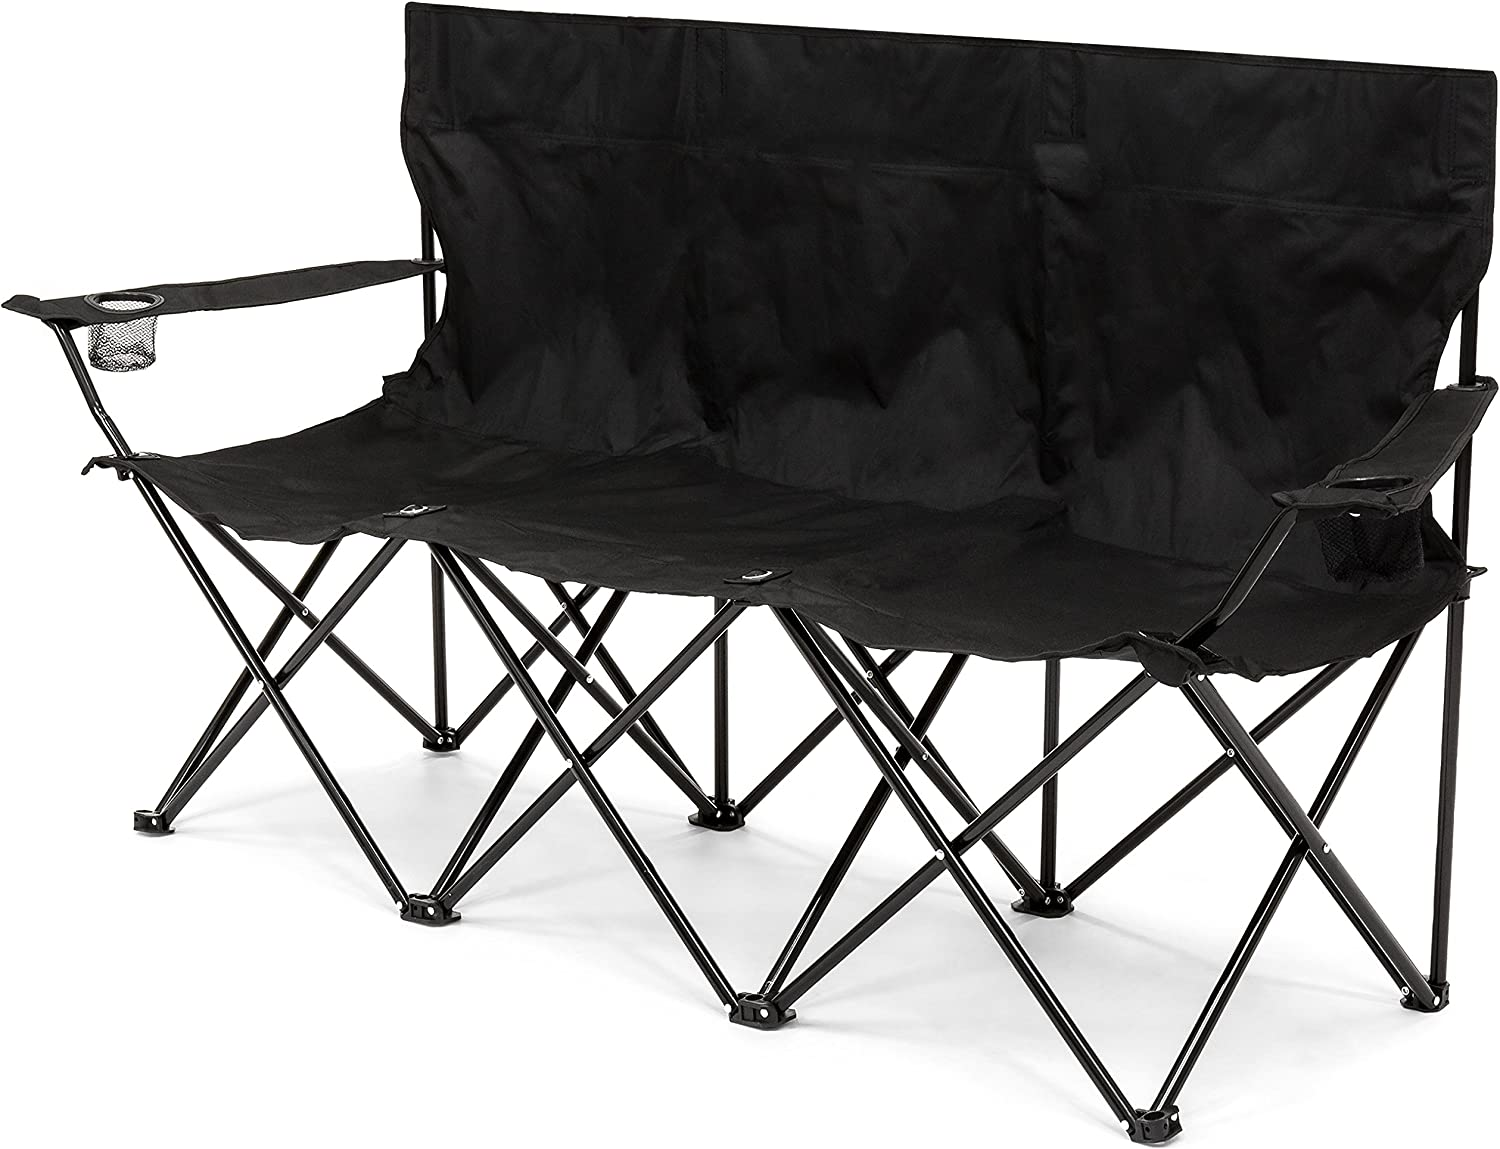 Best Choice Products 3-Person Portable Folding Camping Chair w Built-in Cup Holders, Carrying Bag – Black